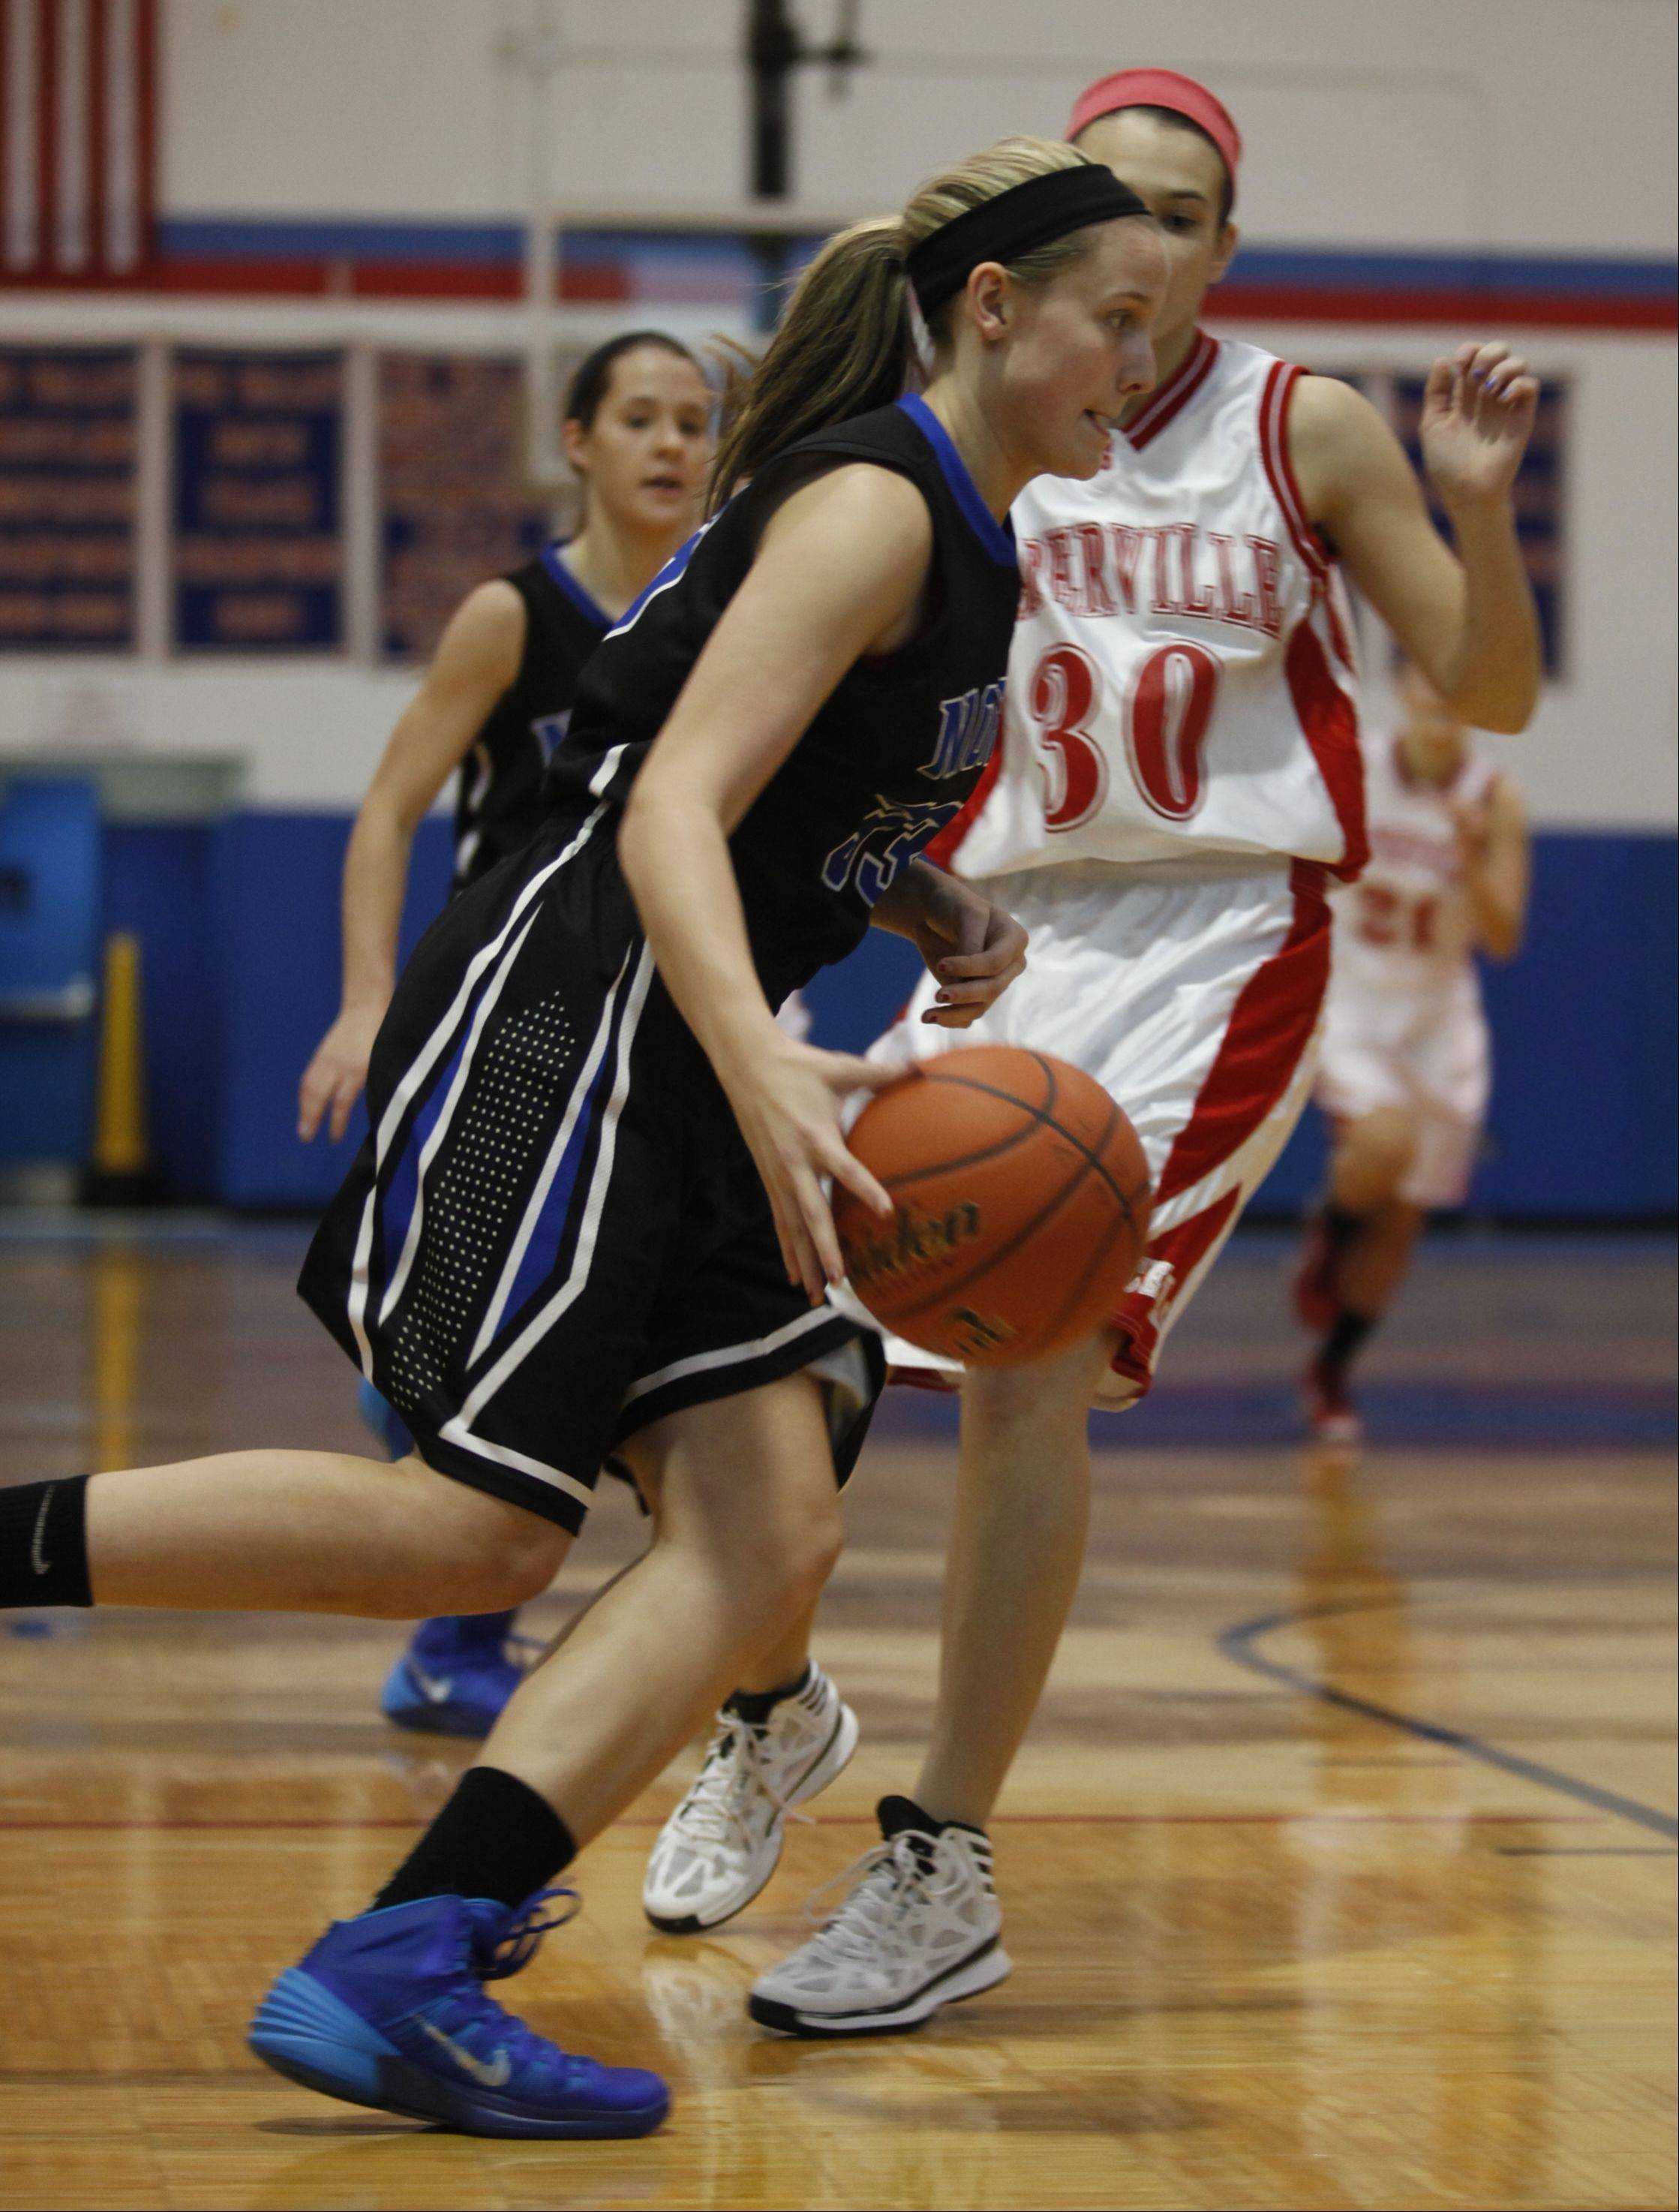 Images from the Naperville Central vs. St. Charles North girls basketball game Monday, December 30, 2013.